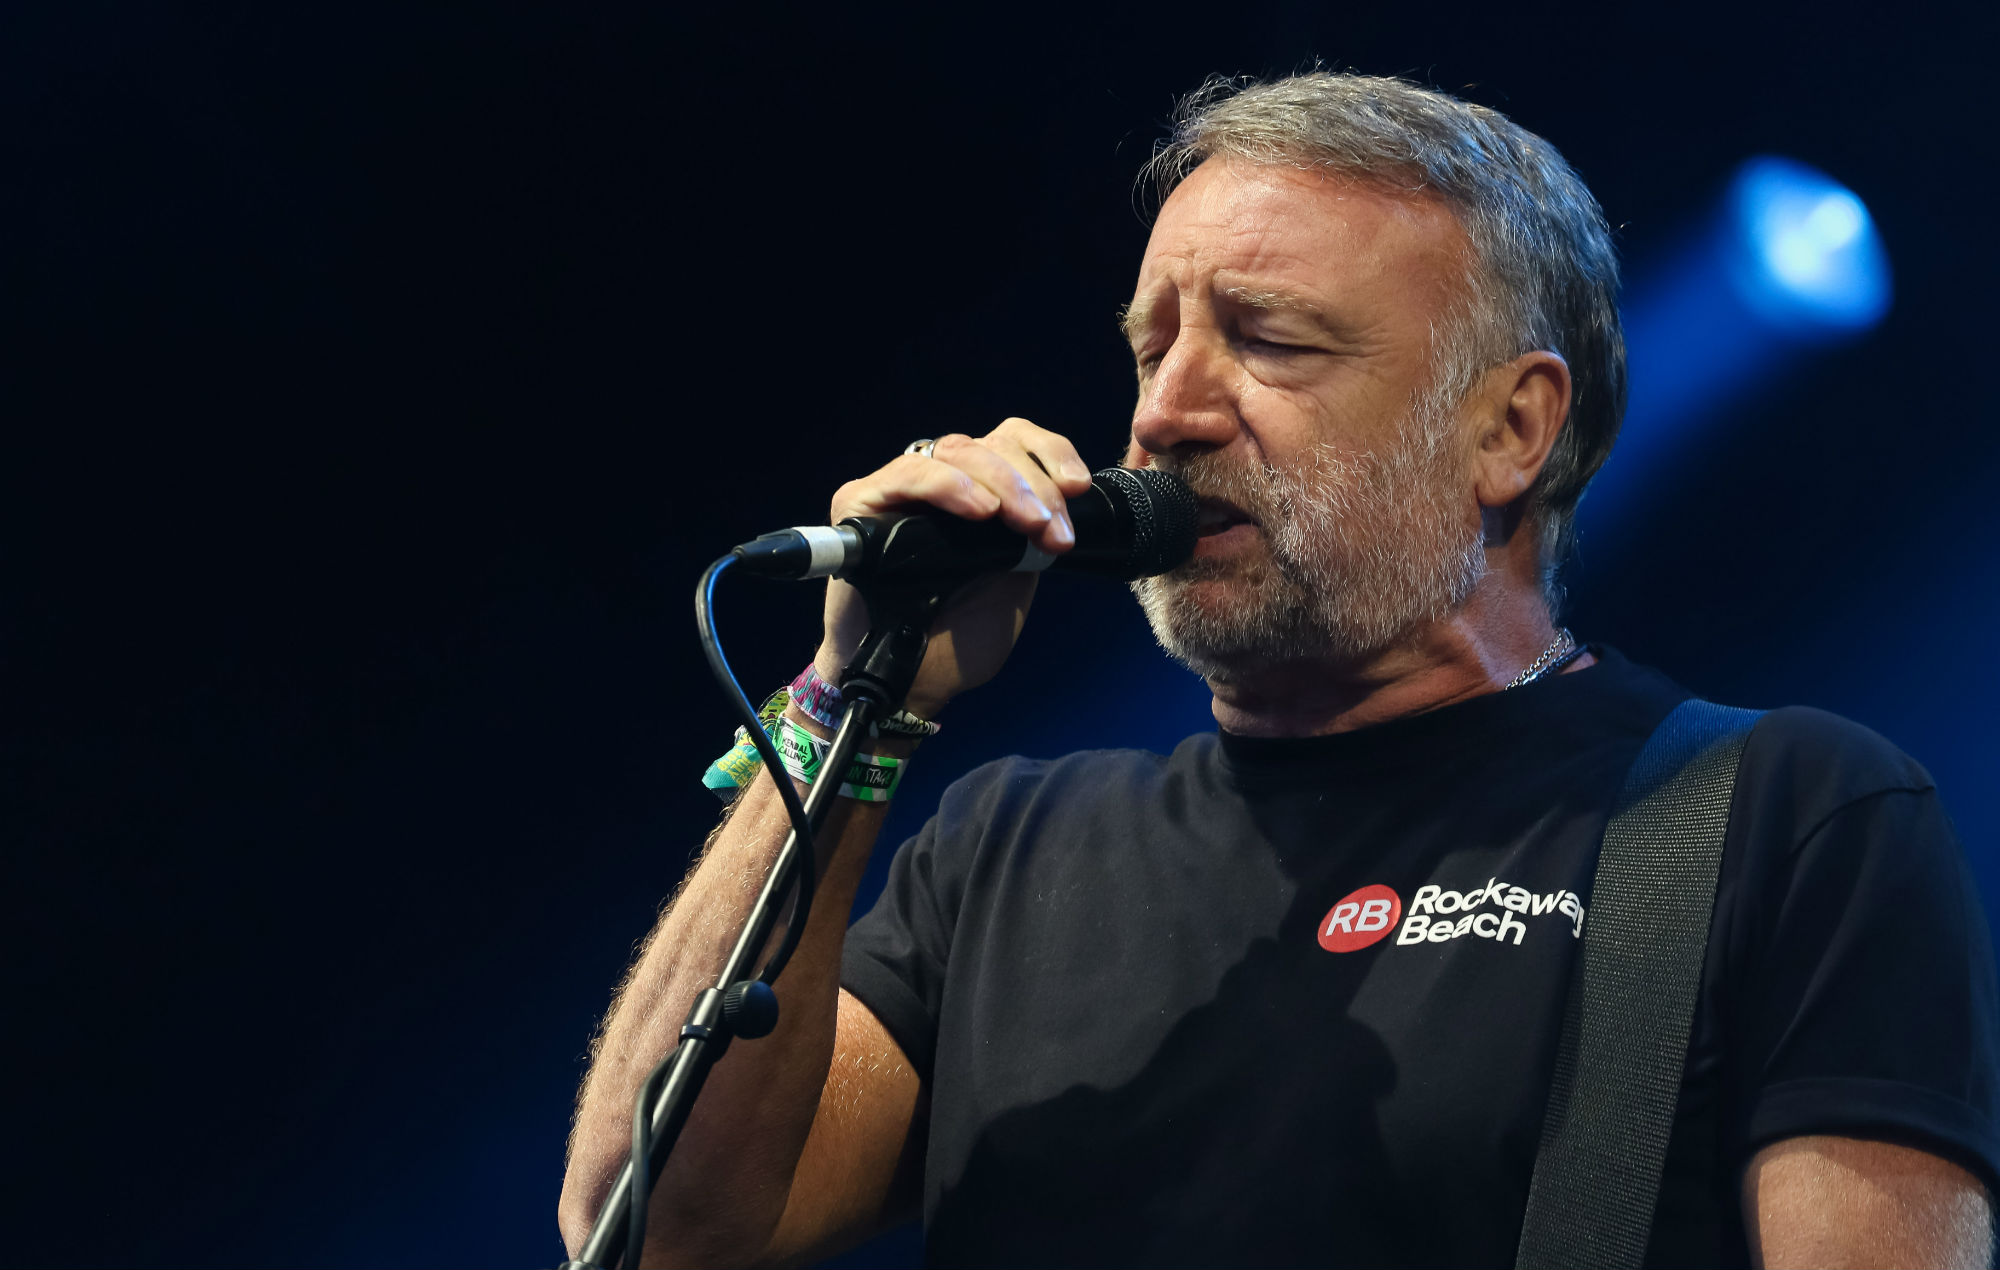 Peter Hook says playing Joy Division's 'Closer' live was one of his greatest career moments